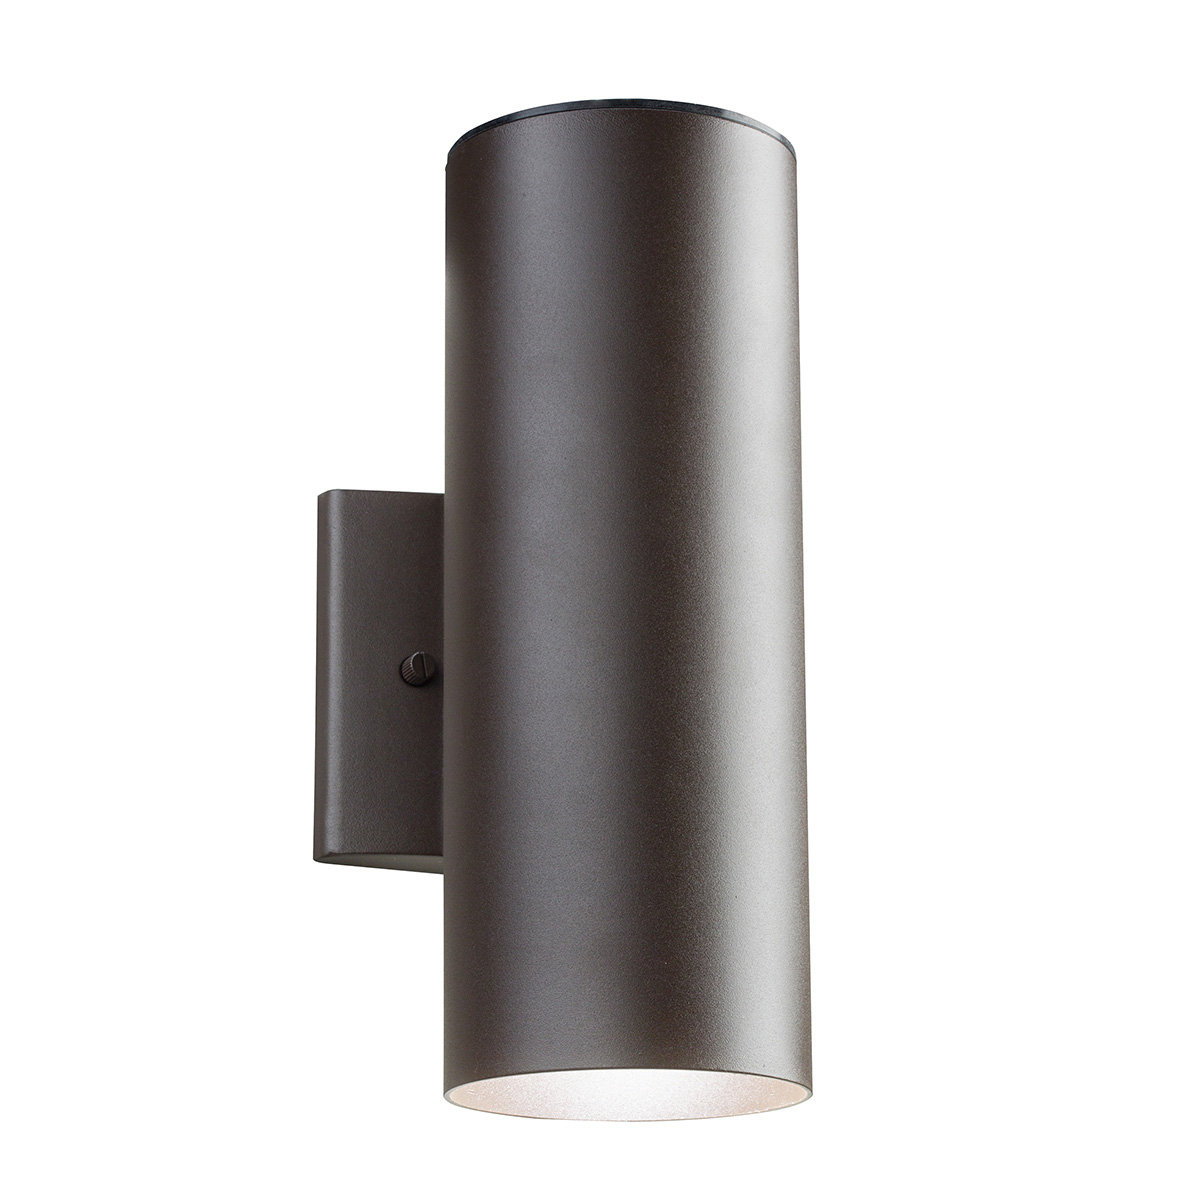 Outdoor LED UpDown Wall Sconce by Kichler11251AZT30